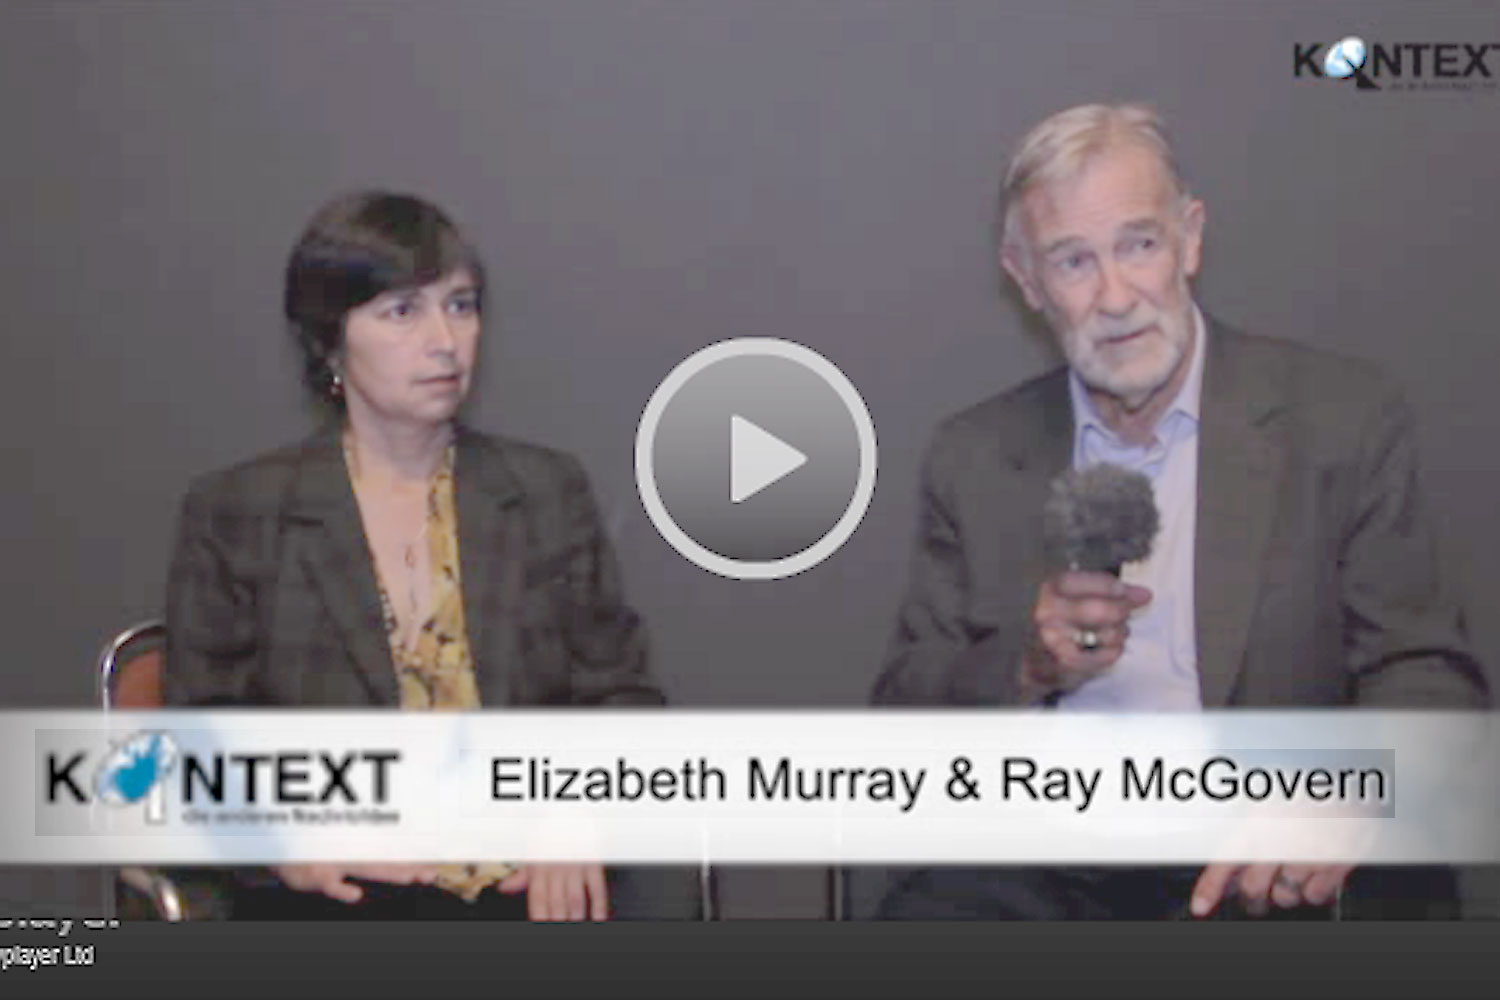 Interview mit Elizabeth Murray und Ray McGovern